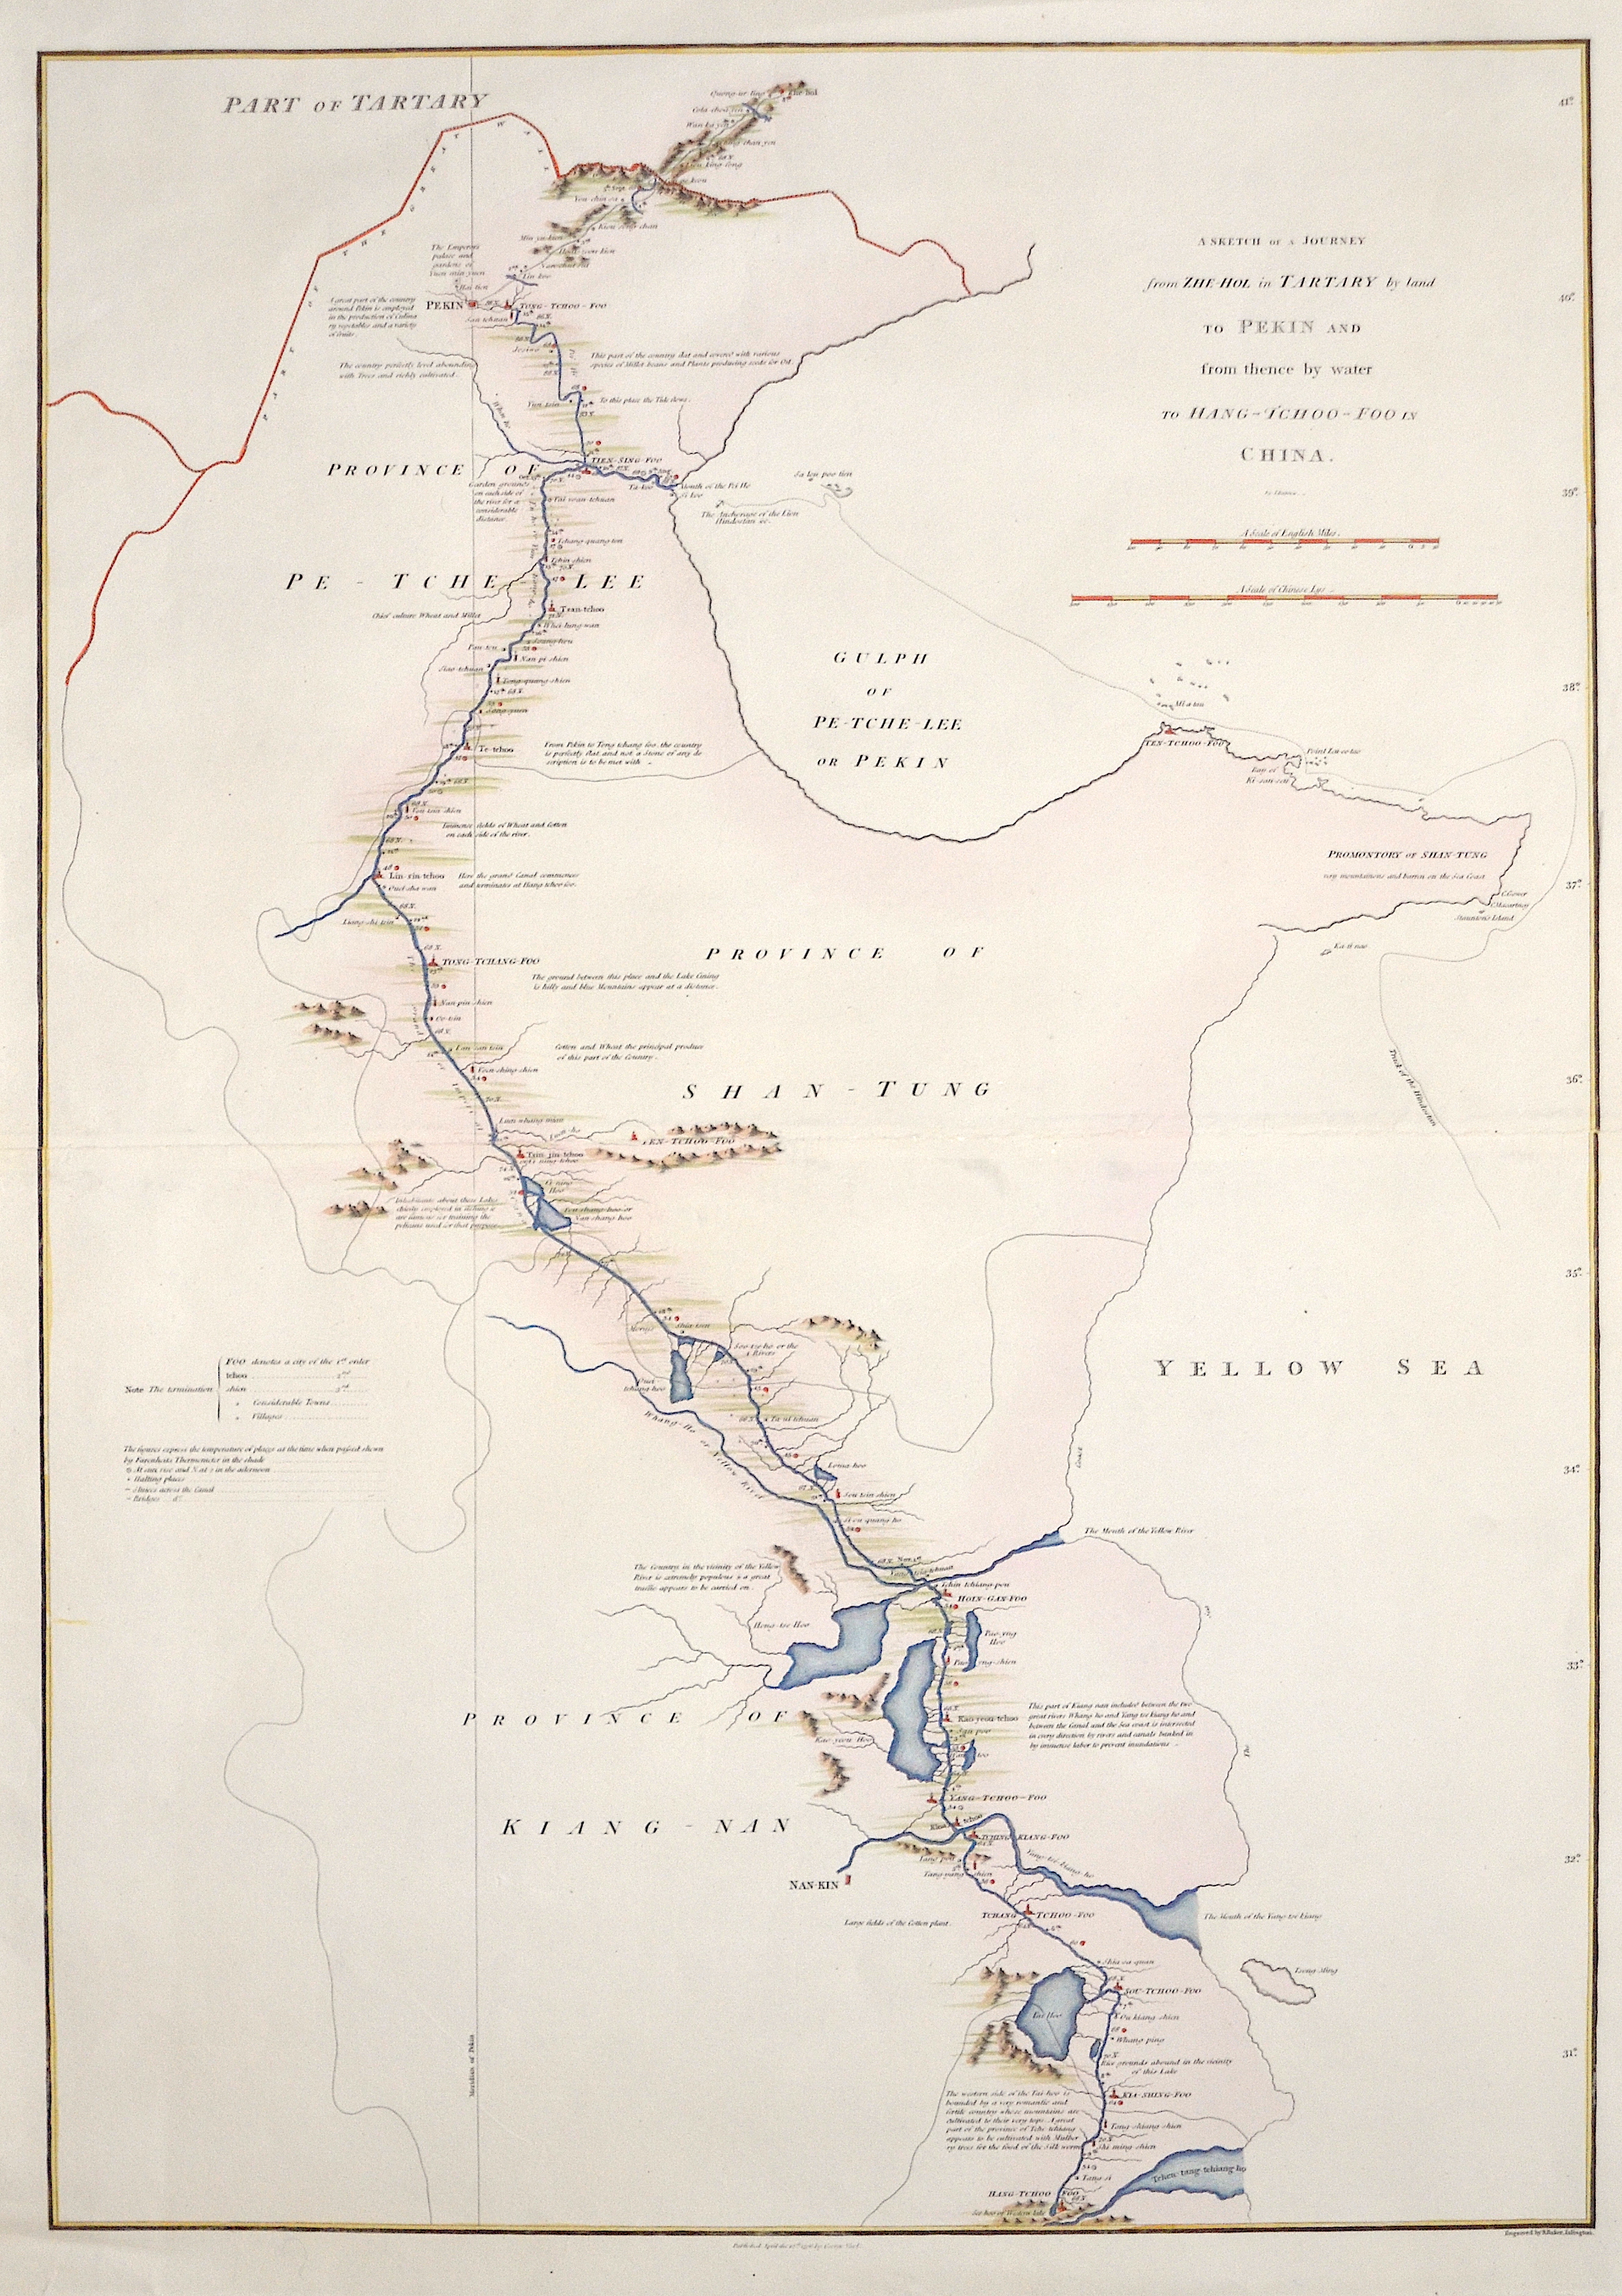 Straunton Georg Leonard A Sketch of a Journey from Zhe-Hol in Tartary by land to Pekin and from thence by water to Hang-Tchoo-Foo in China.